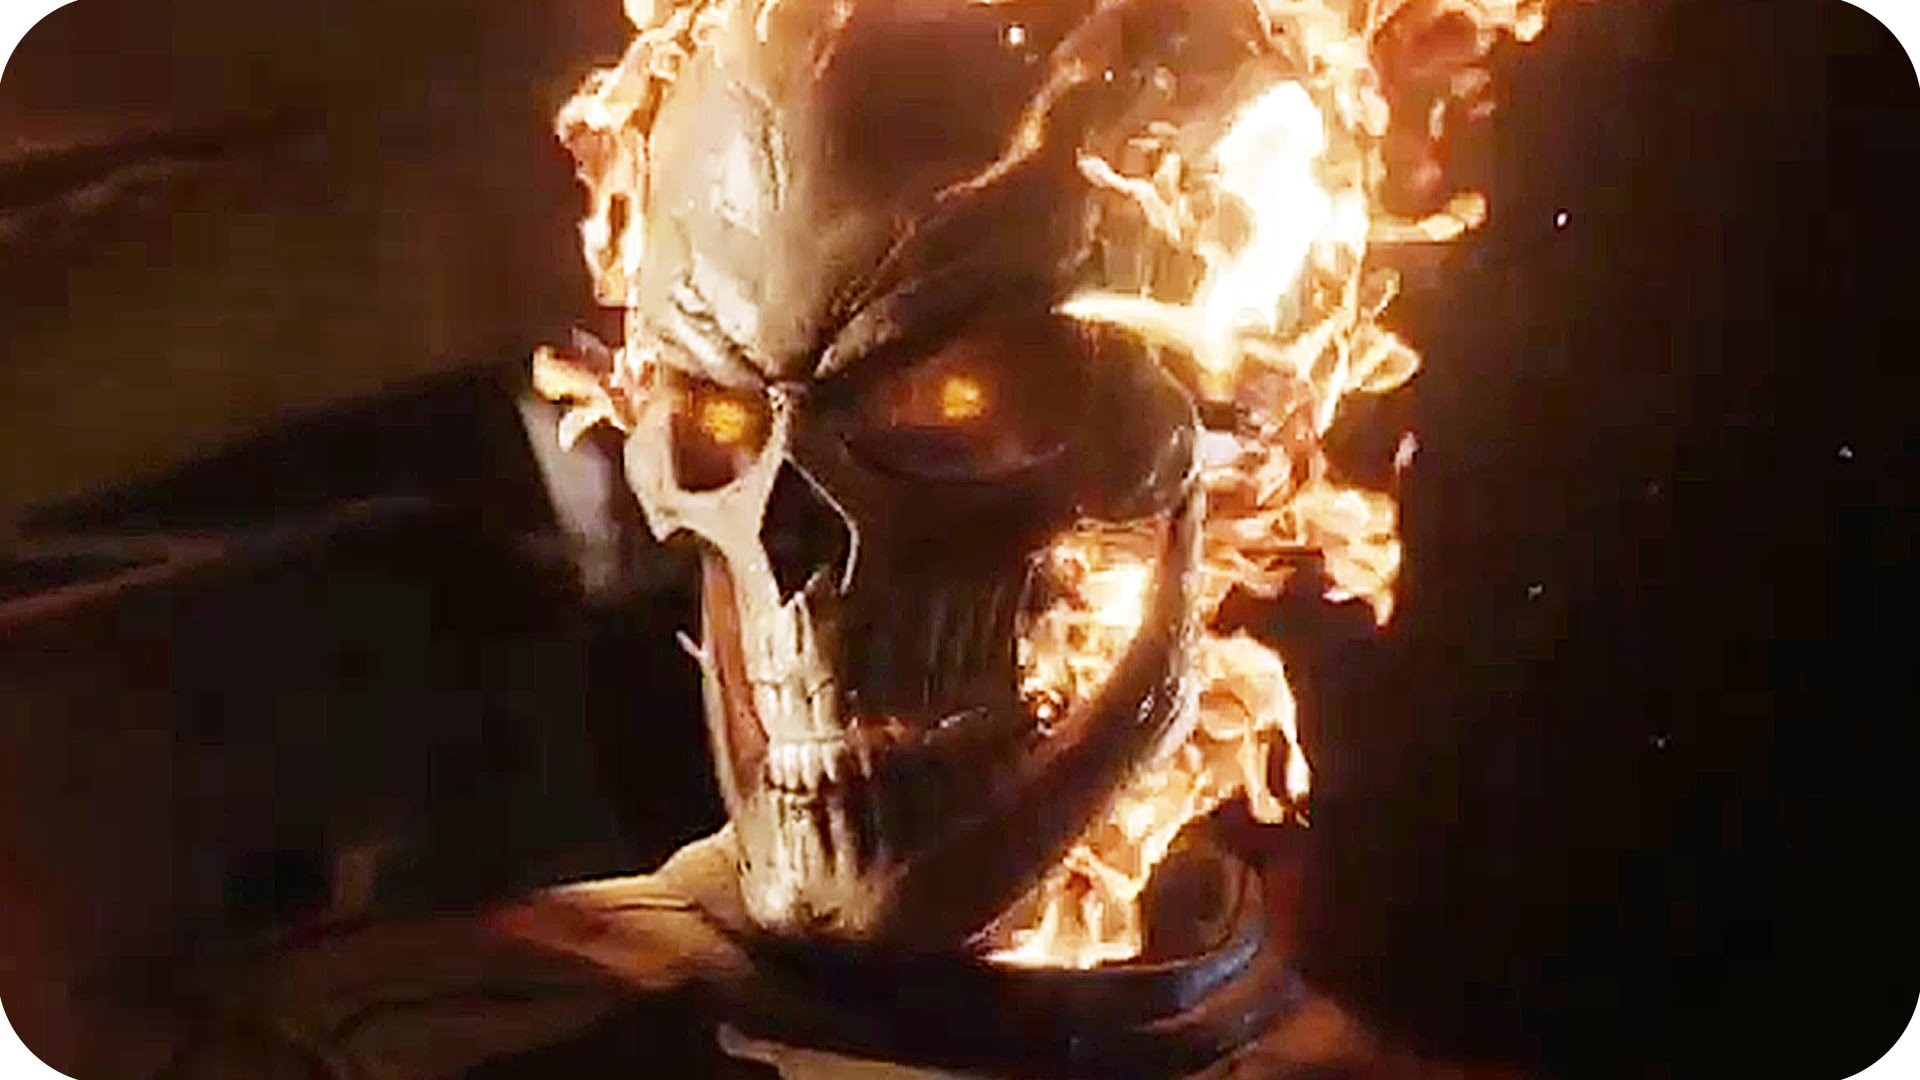 Amazing Wallpaper Mobile Ghost Rider - 852936-new-ghost-rider-wallpaper-2018-1920x1080-for-mobile  Pic_41469.jpg